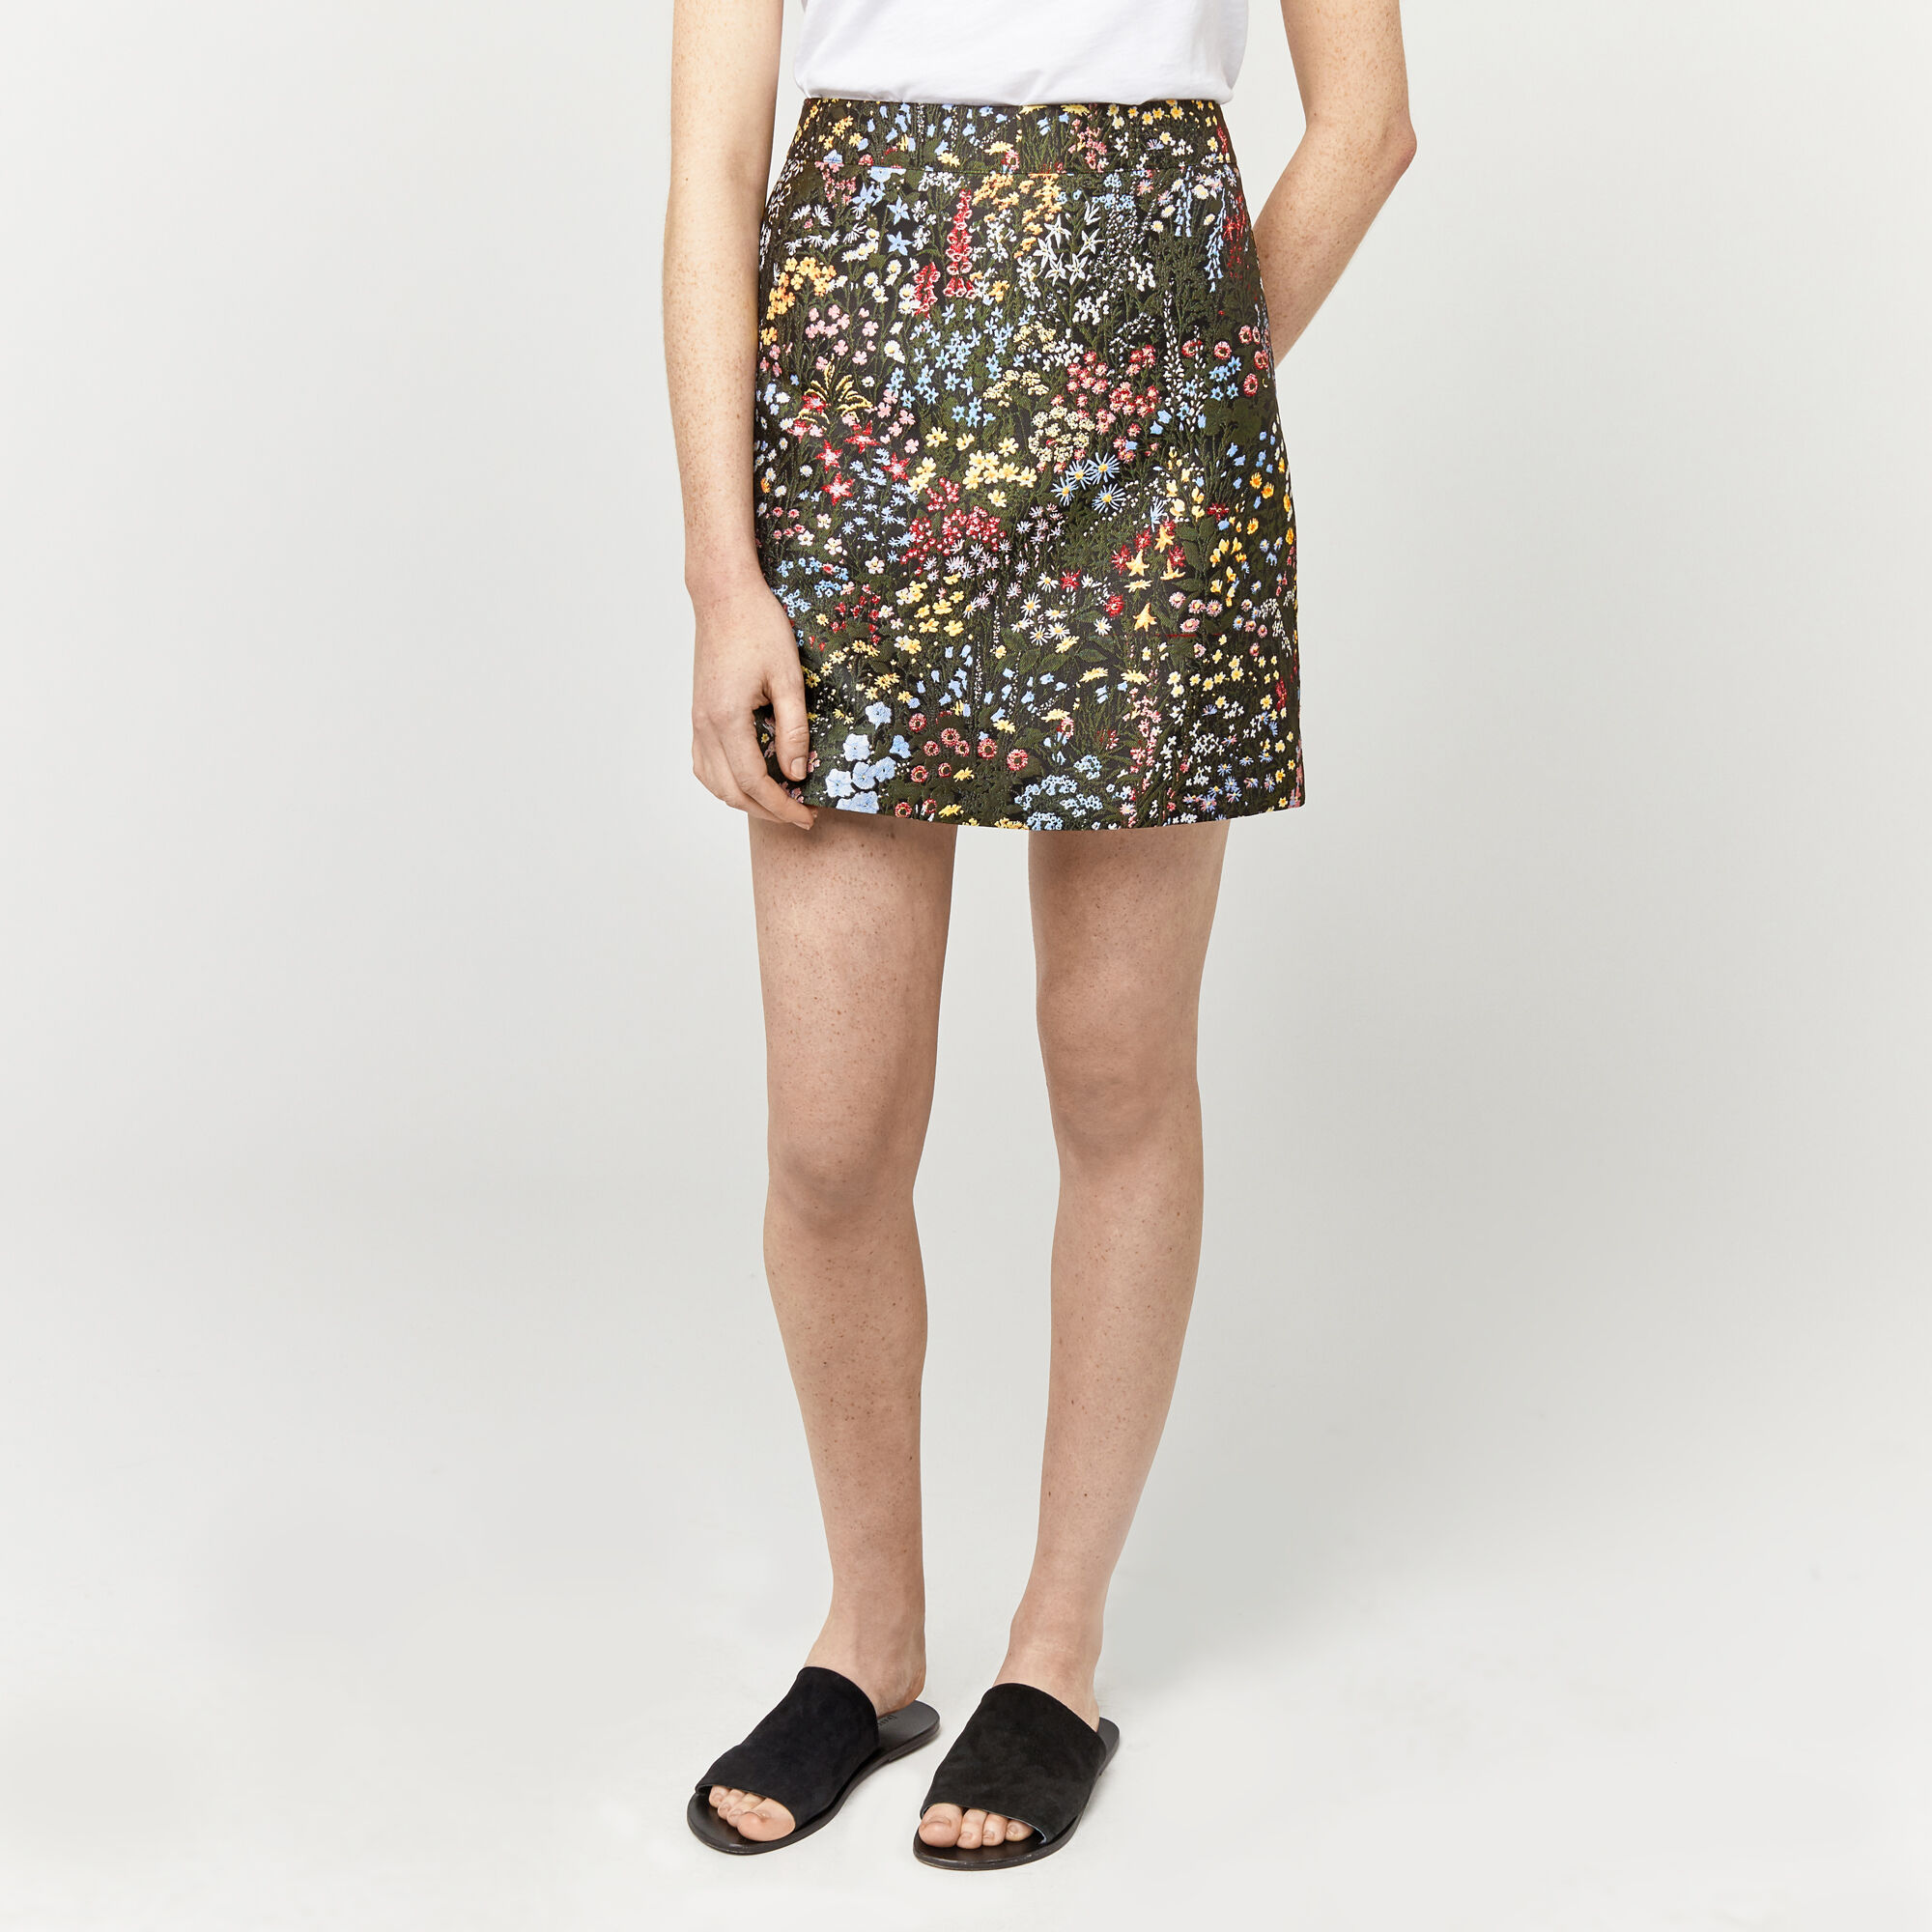 Warehouse, WILD GARDEN JACQUARD SKIRT Multi 1